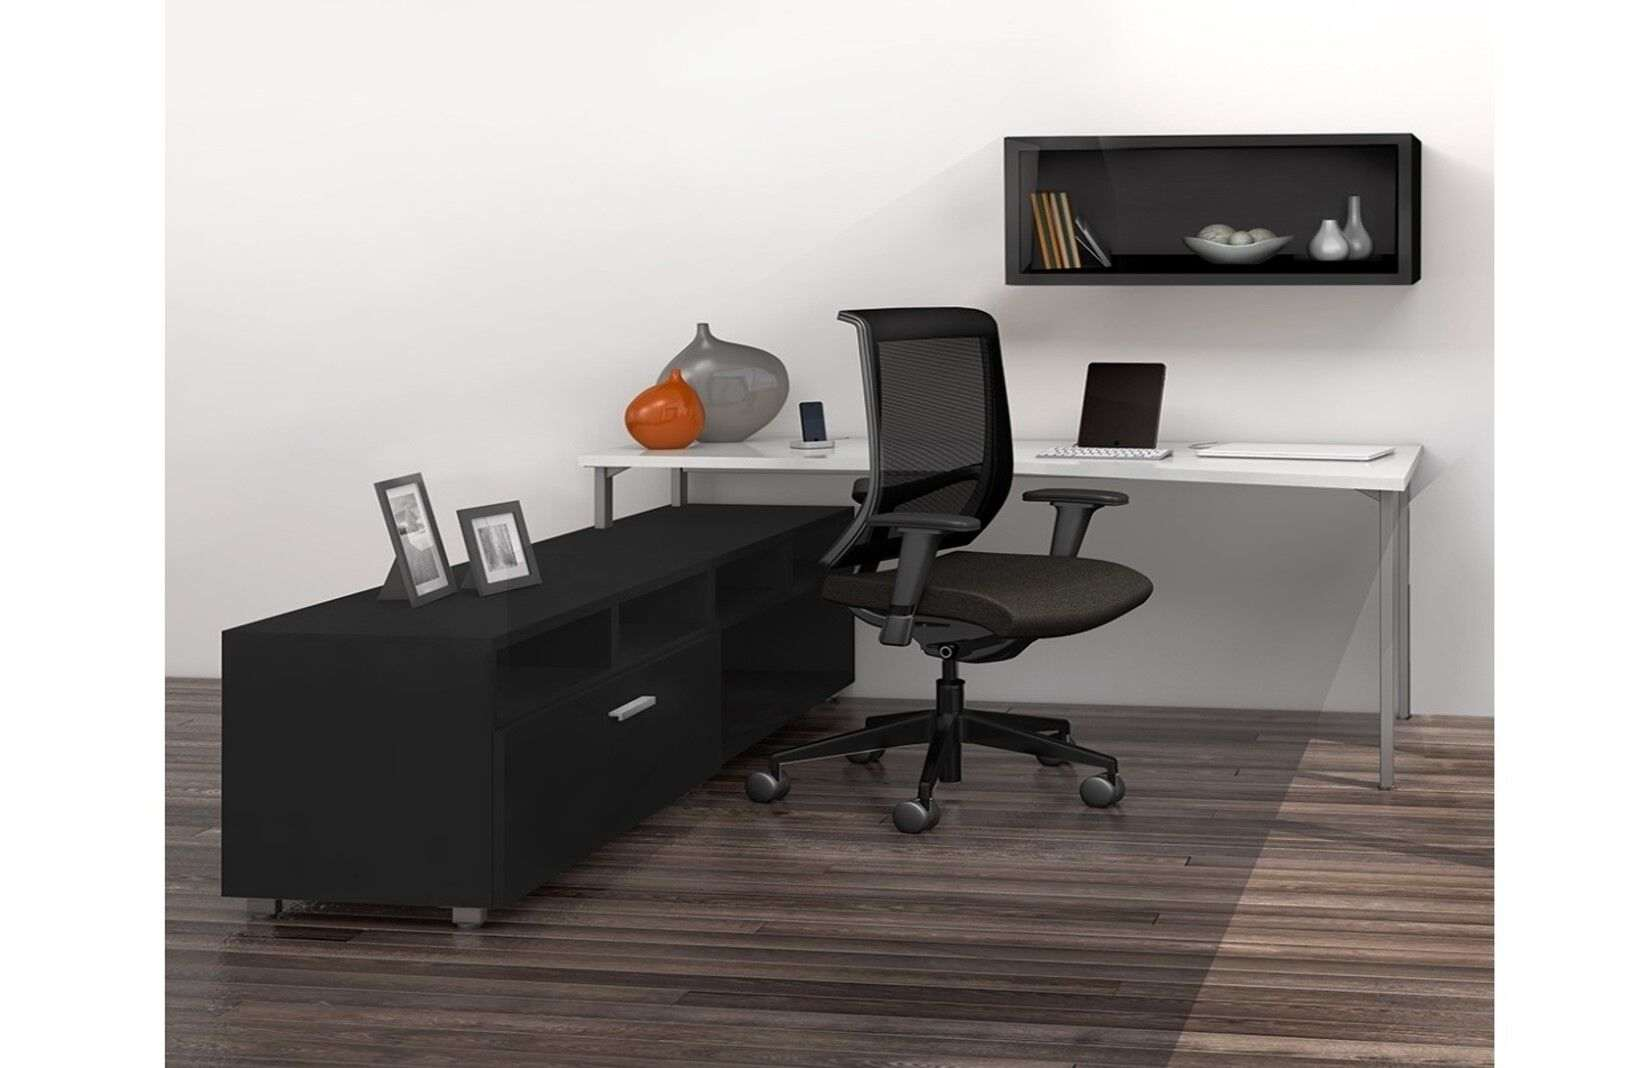 lshaped-desks-l-shaped-modern-desk_preview.jpg